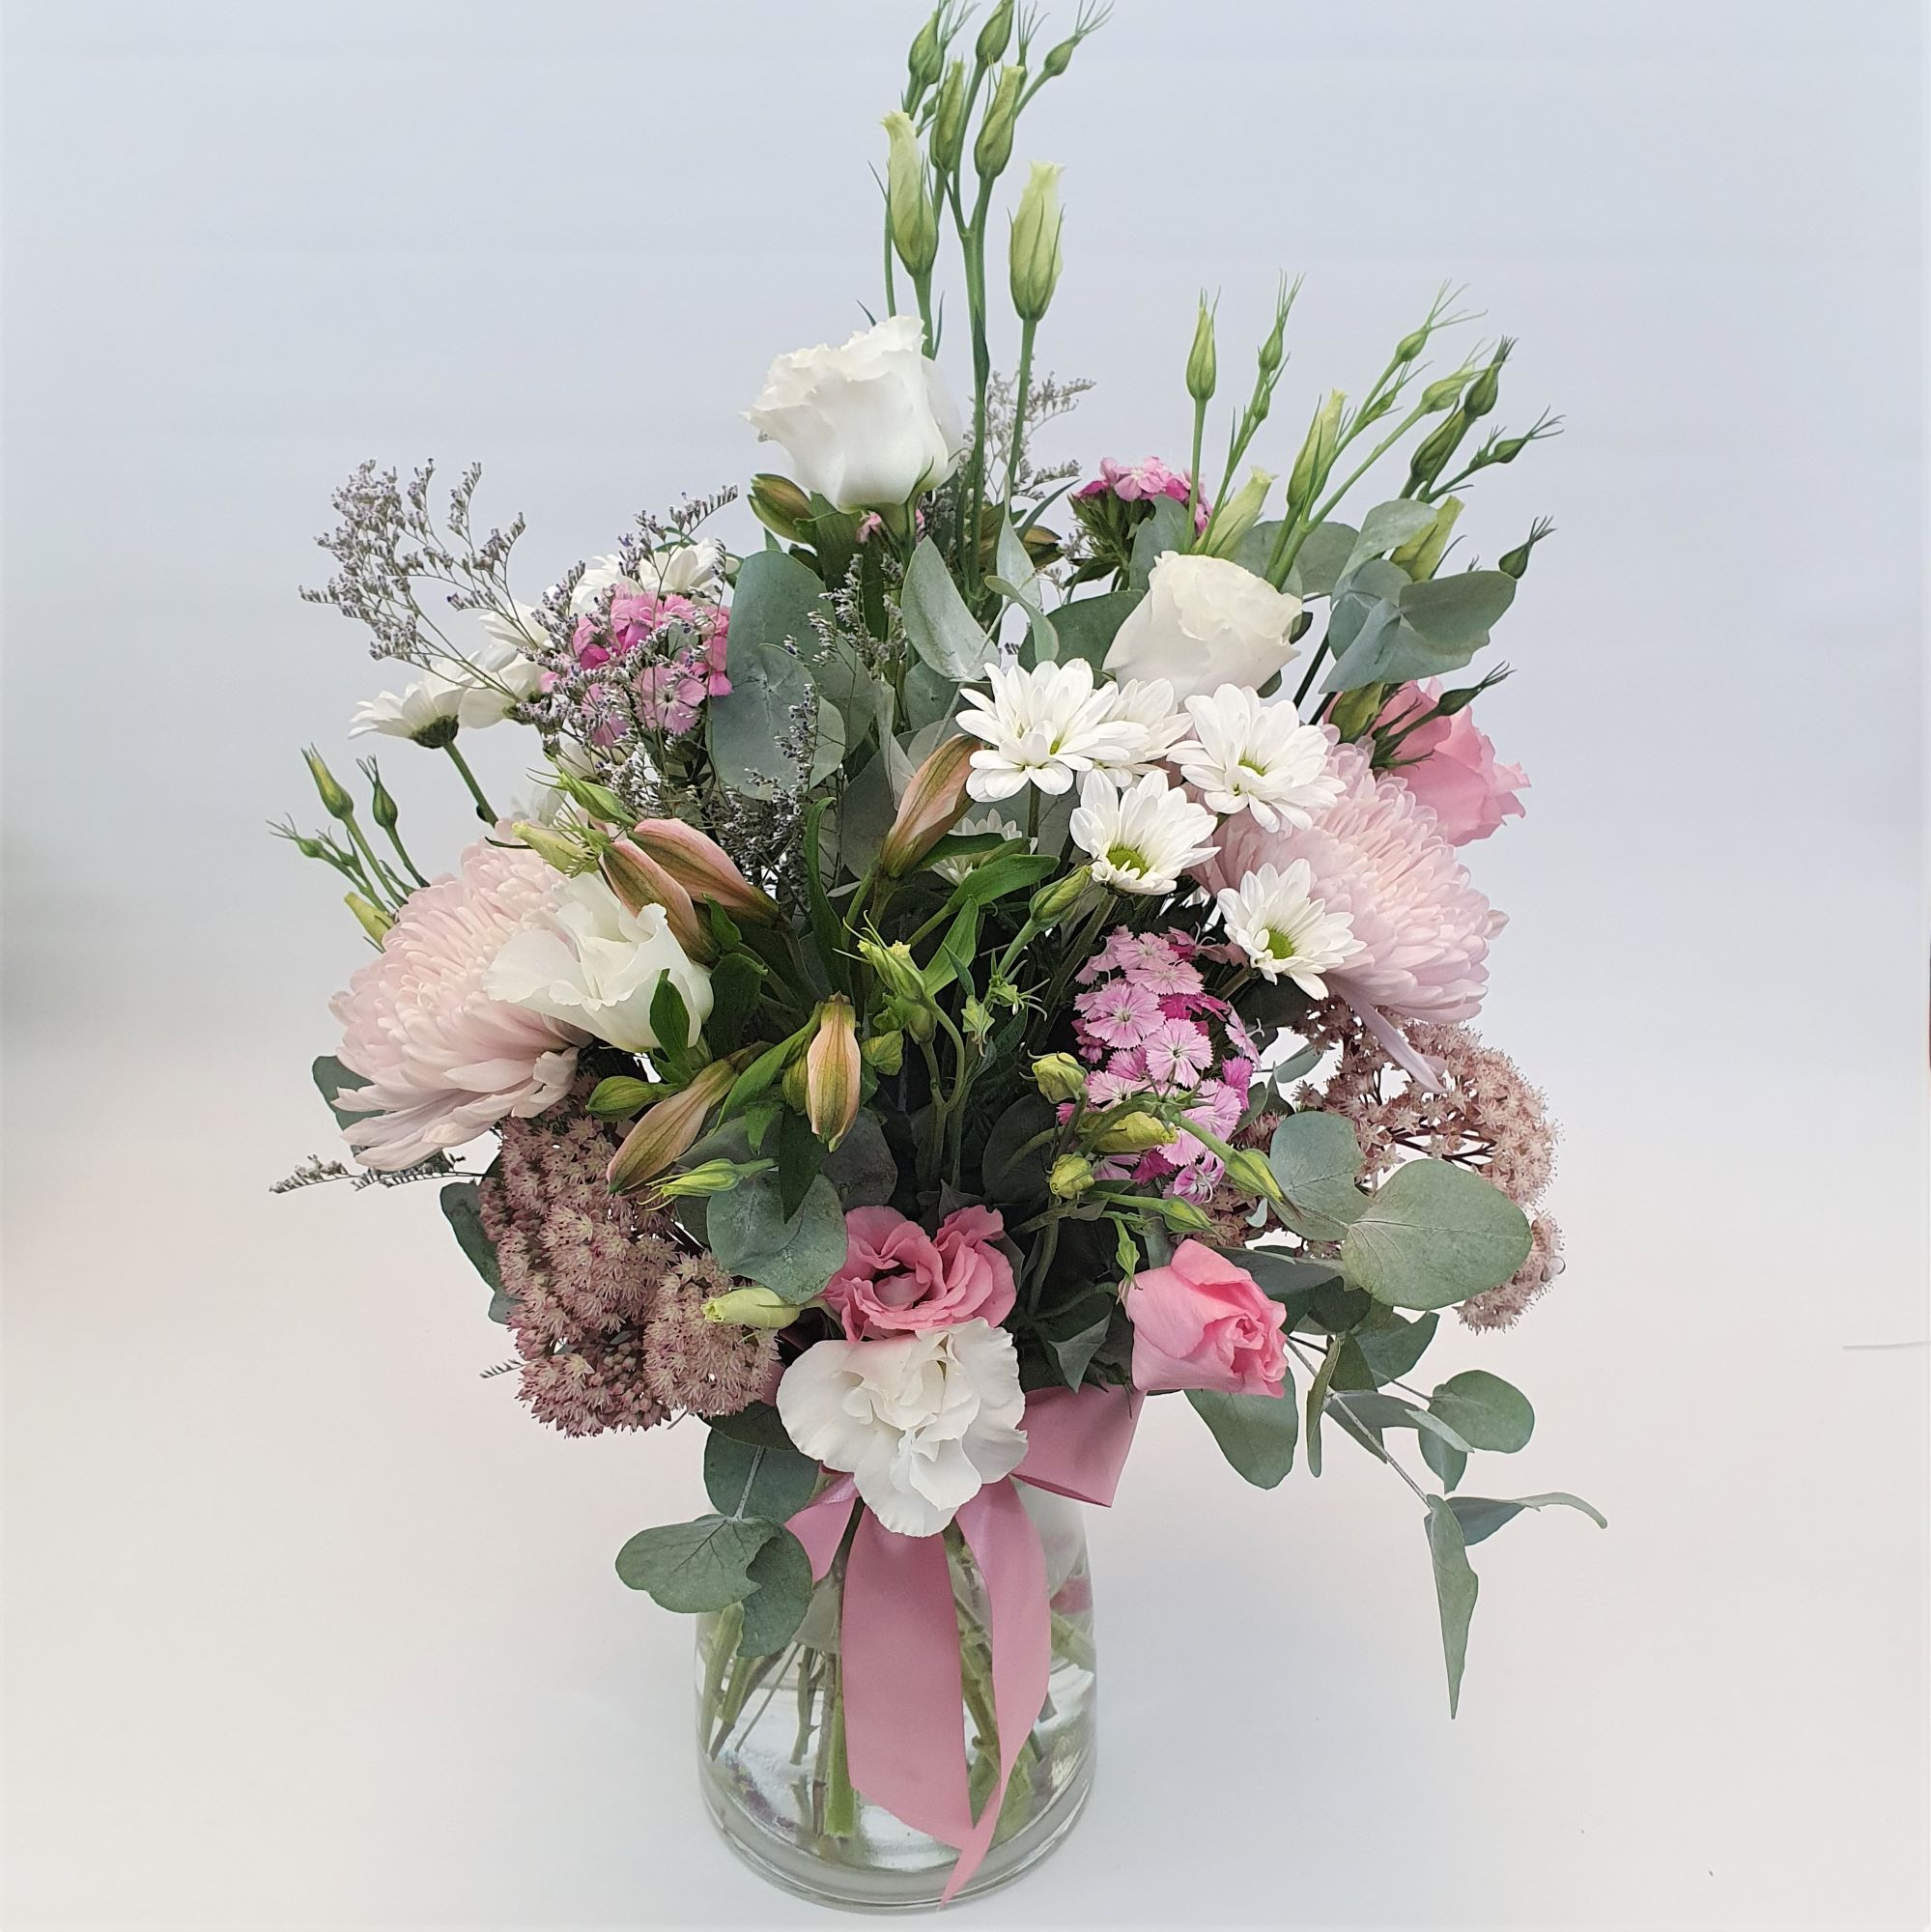 Laura - Pink & white seasonal bouquet of flowers in a glass vase - Anniversary / Romance,Birthday / Congratulations,New Baby,Sympathy / Funerals,Get Well,Any Occasion,Mothers Day